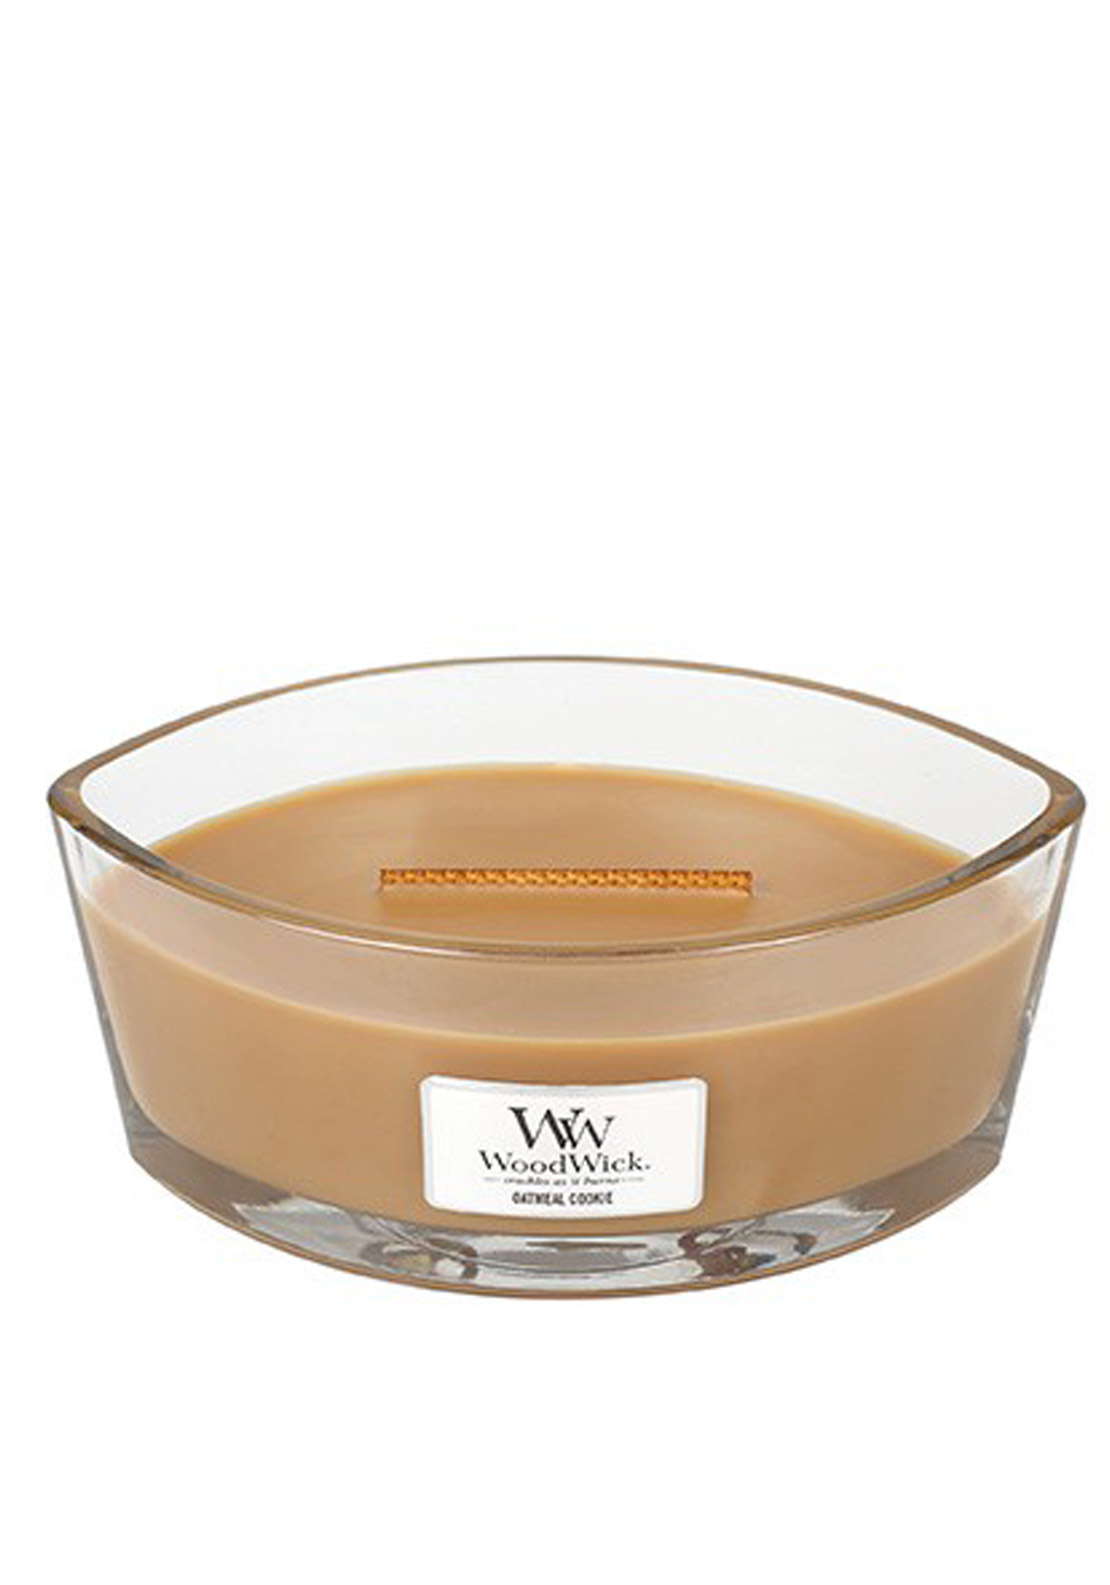 WoodWick Hearthwick Flame Large Candle, Oatmeal Cookie